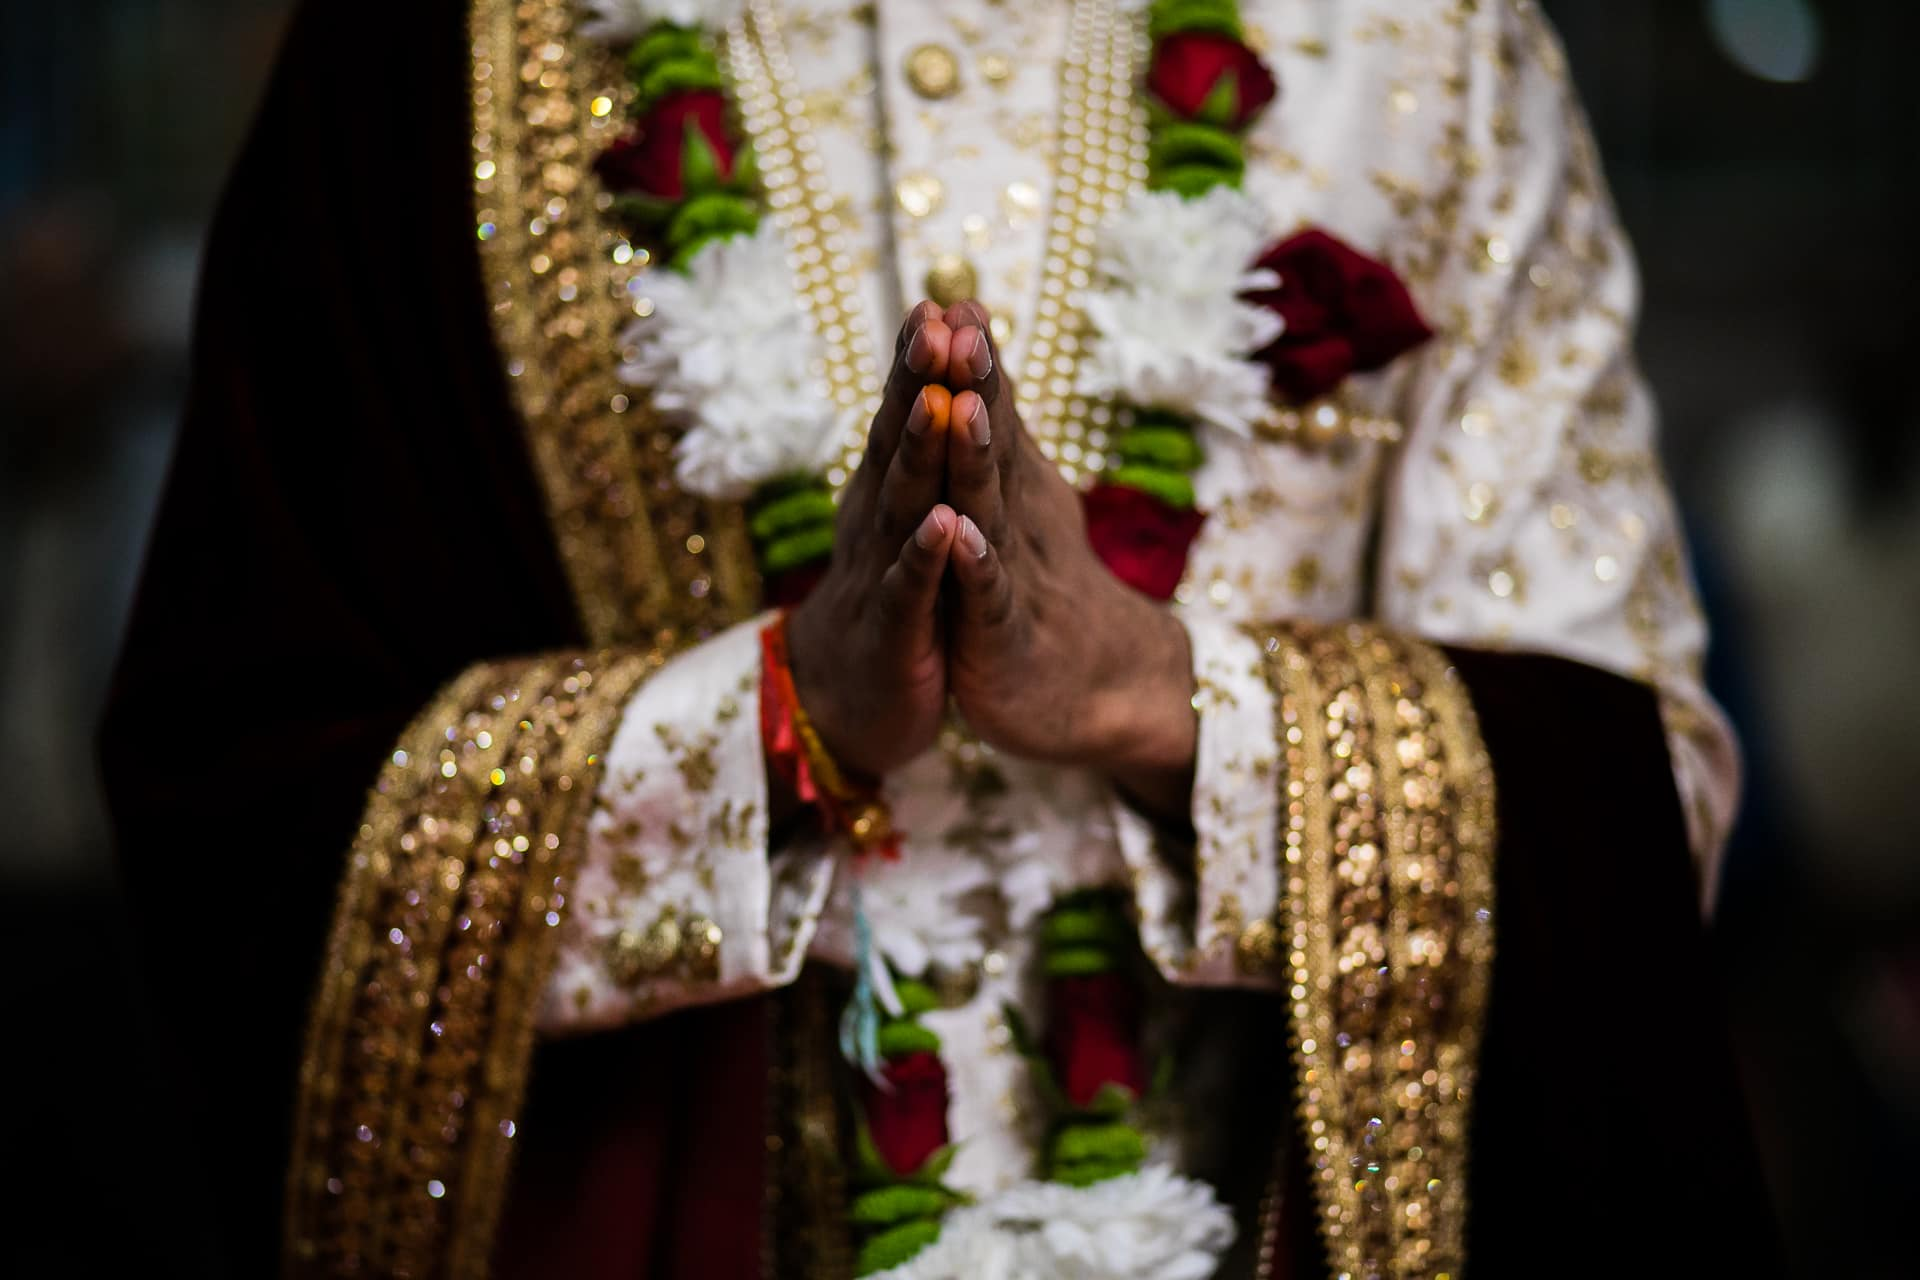 Wedding Groom's hands in prayer position